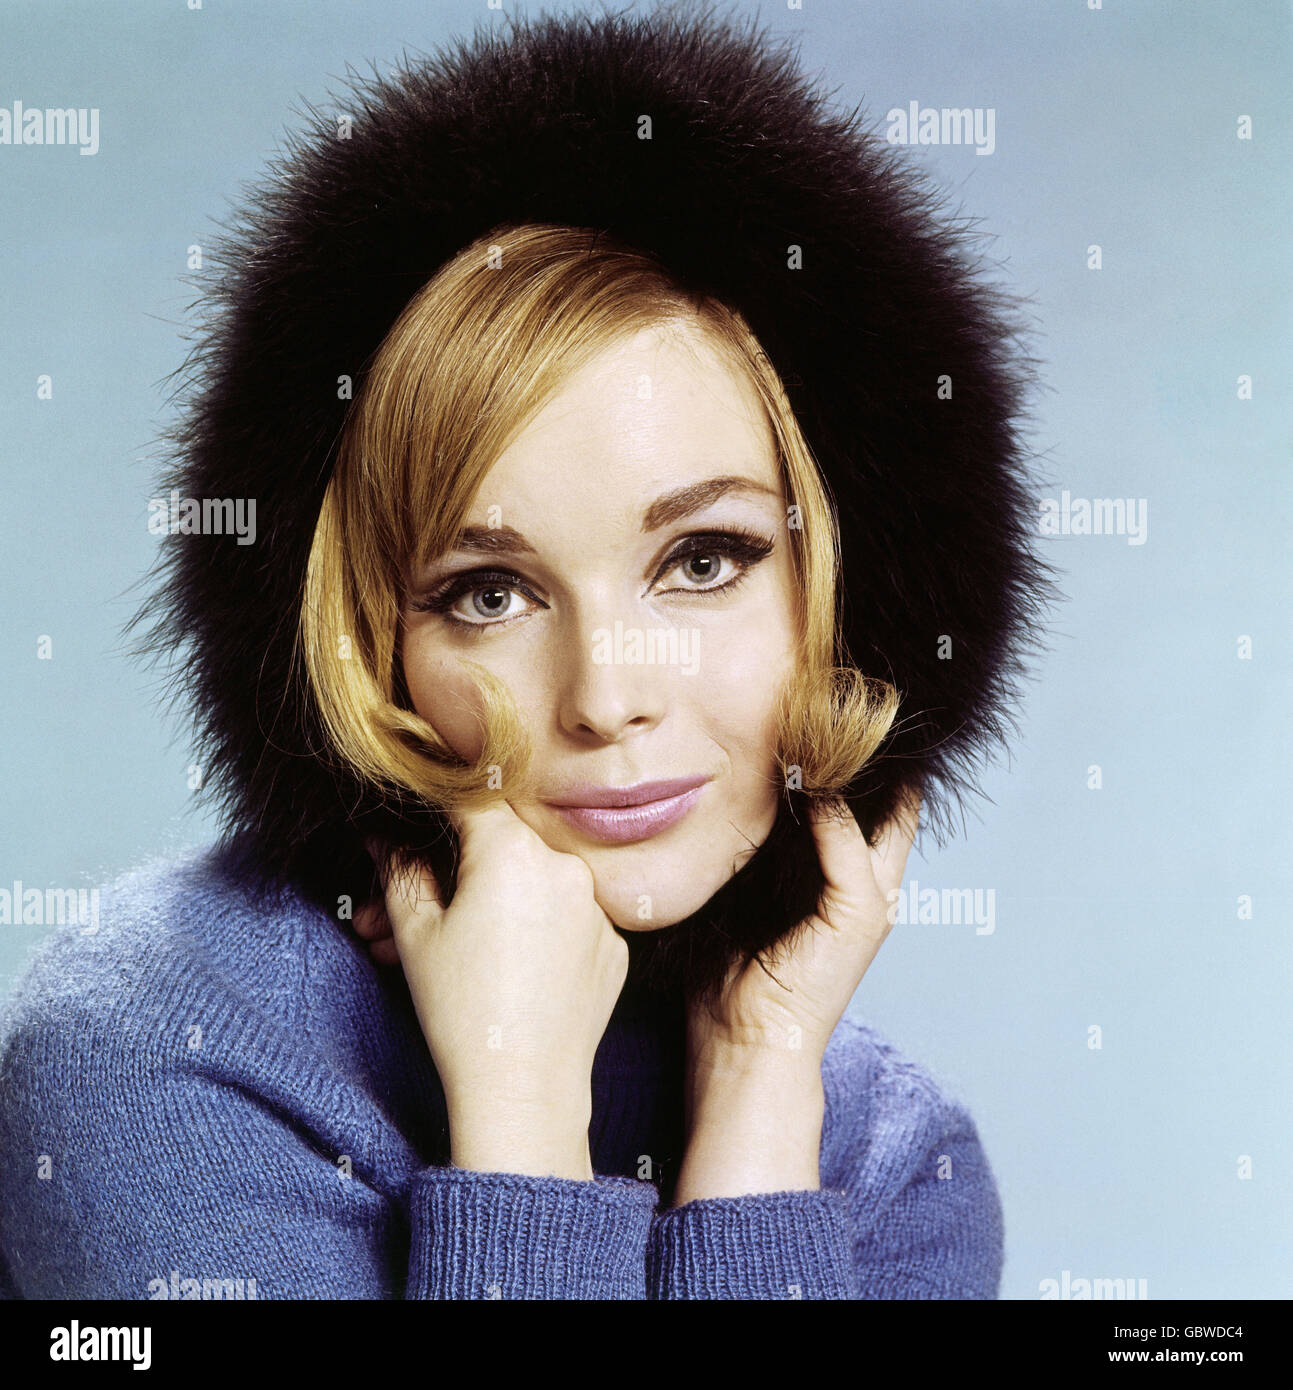 fashion, 1960s, accessoires, caps, woman wearing fur cap, Additional-Rights-Clearences-NA - Stock Image